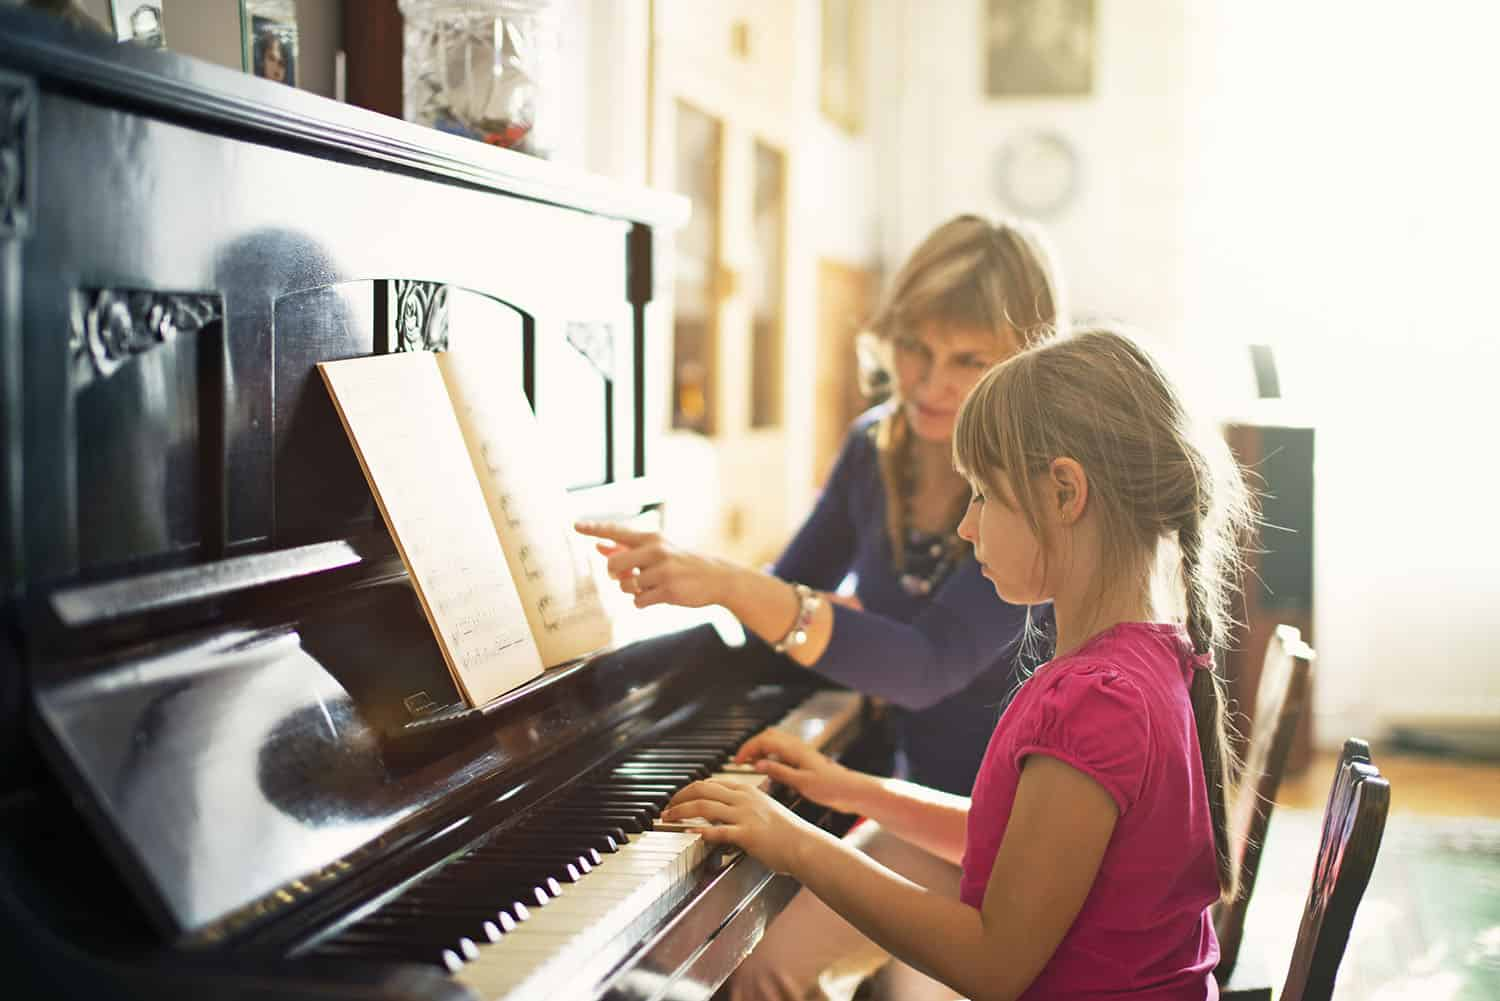 Mother teaching daughter to play piano. The girl is aged 7. Mother and girls are sitting by the old piano in a sunny room.